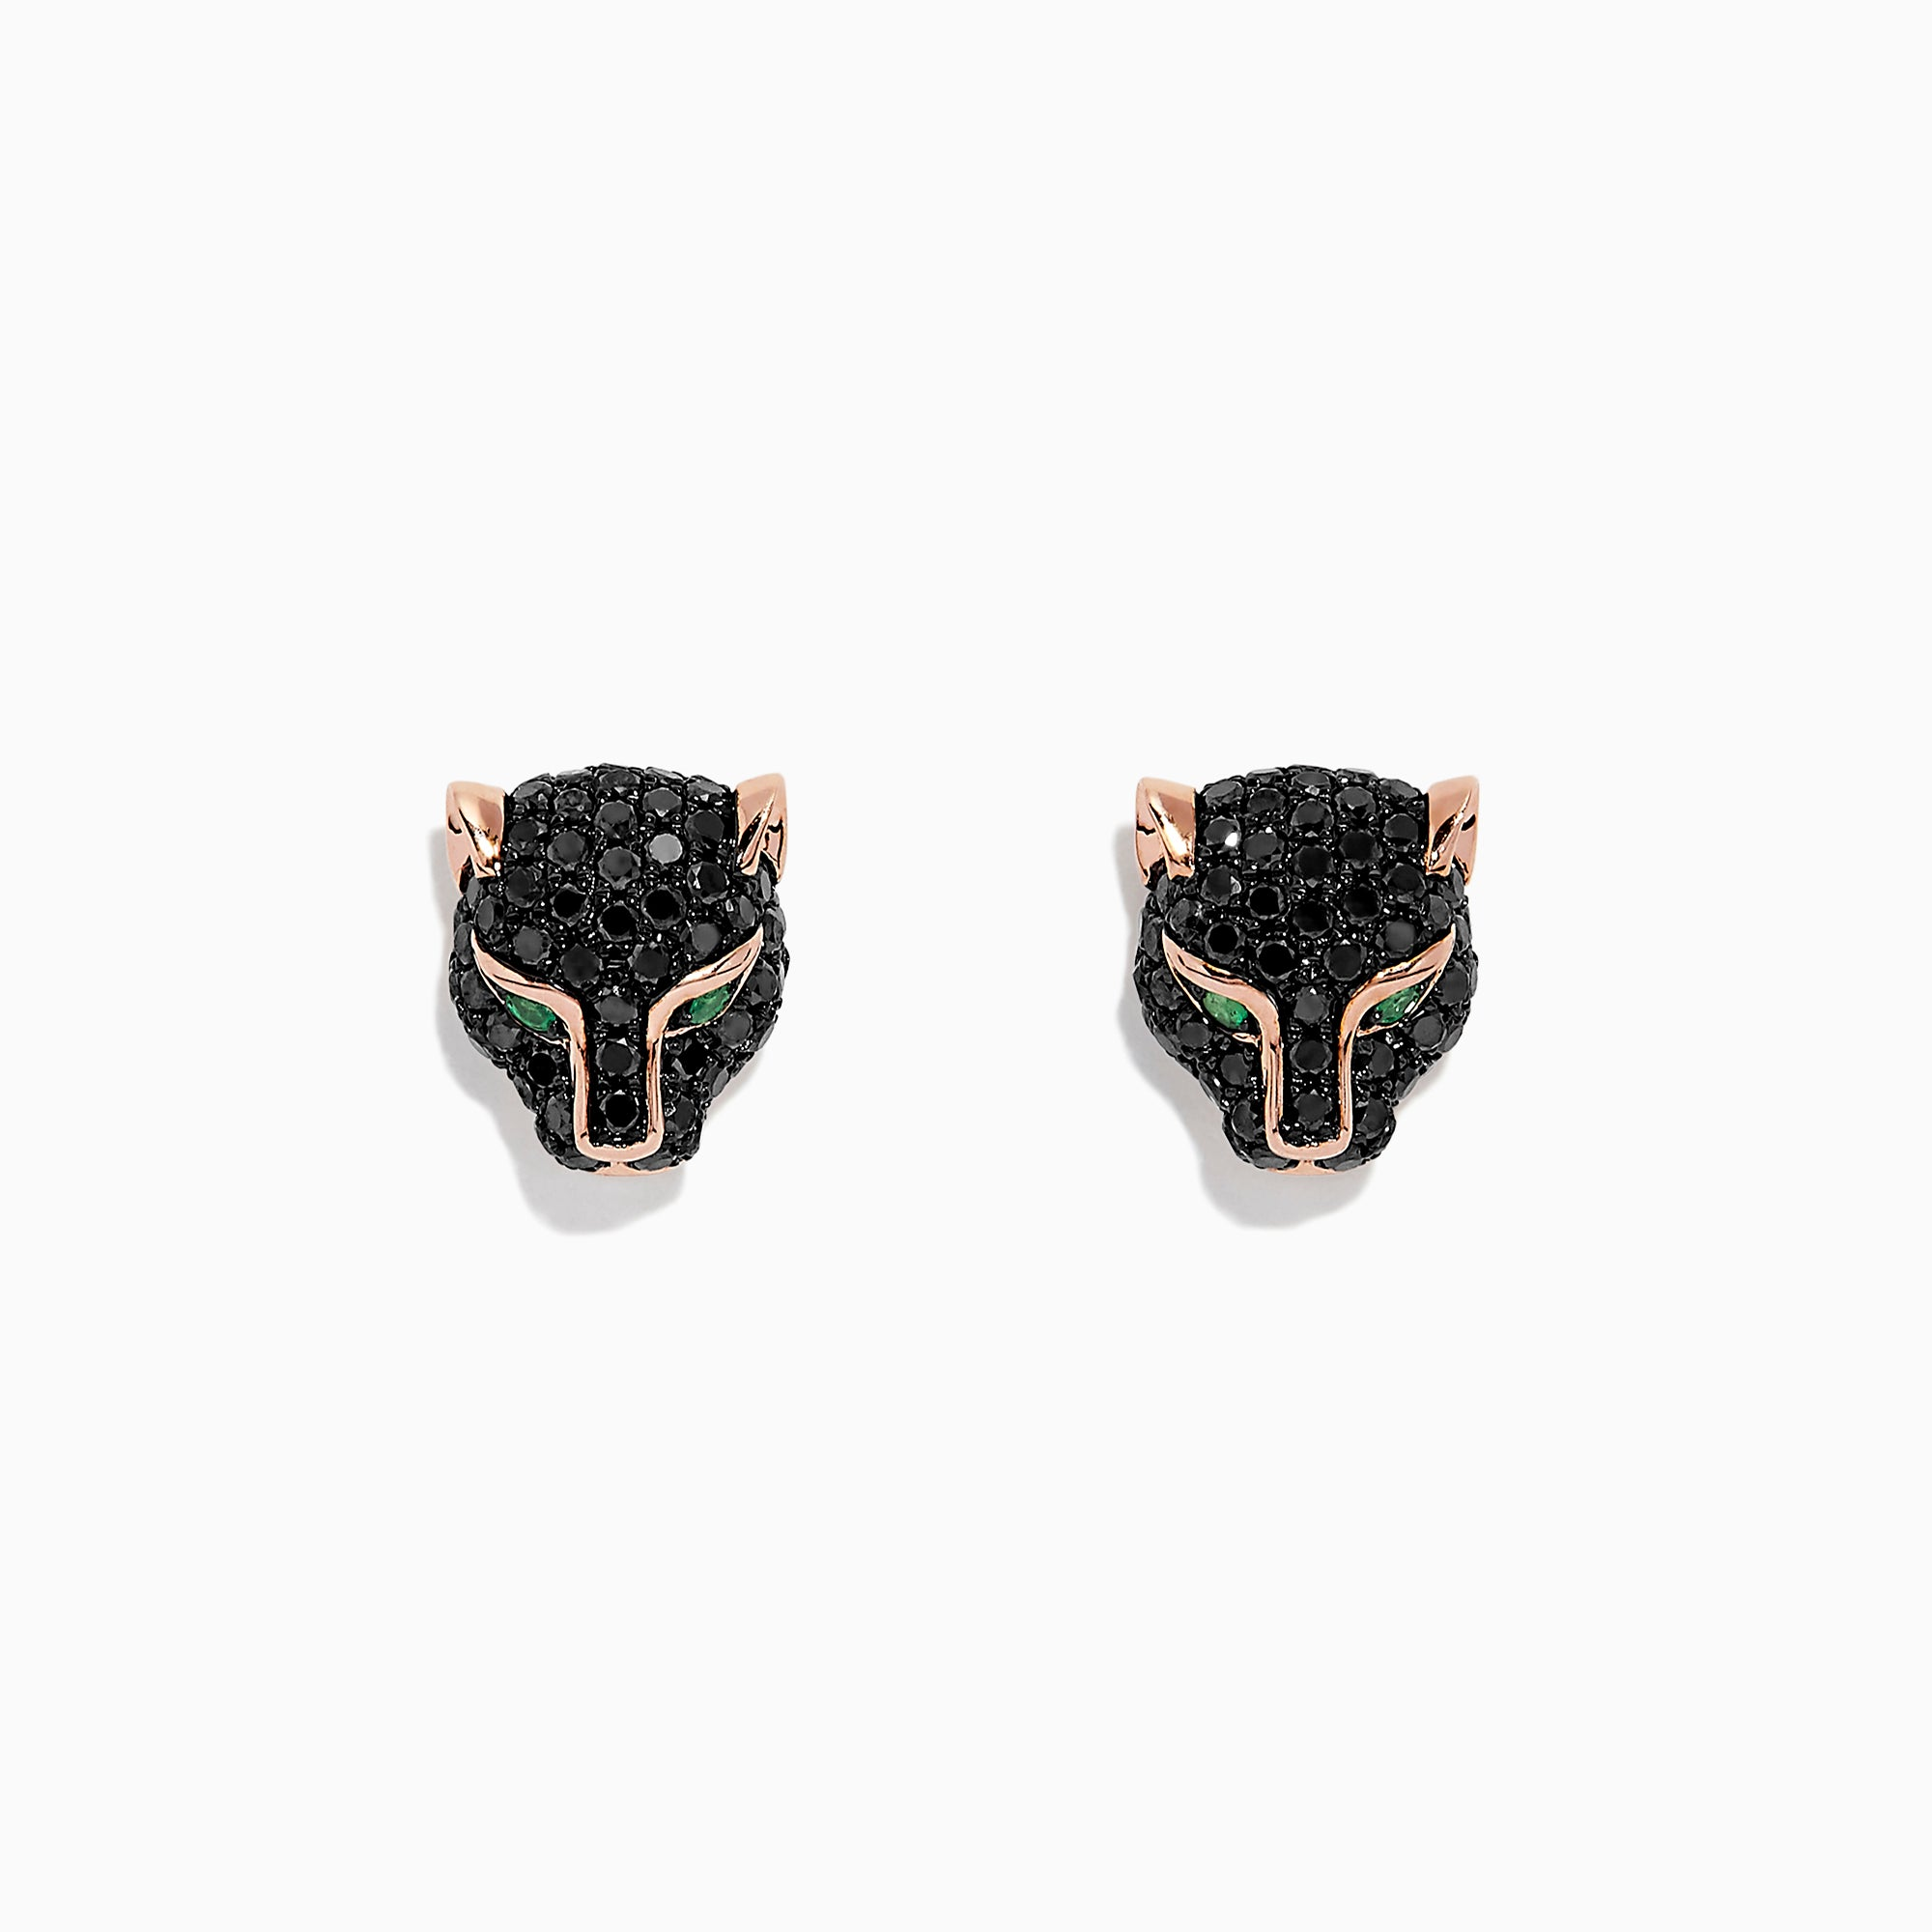 Effy Signature 14K Rose Gold Black Diamond & Emerald Earrings, 0.93 TCW